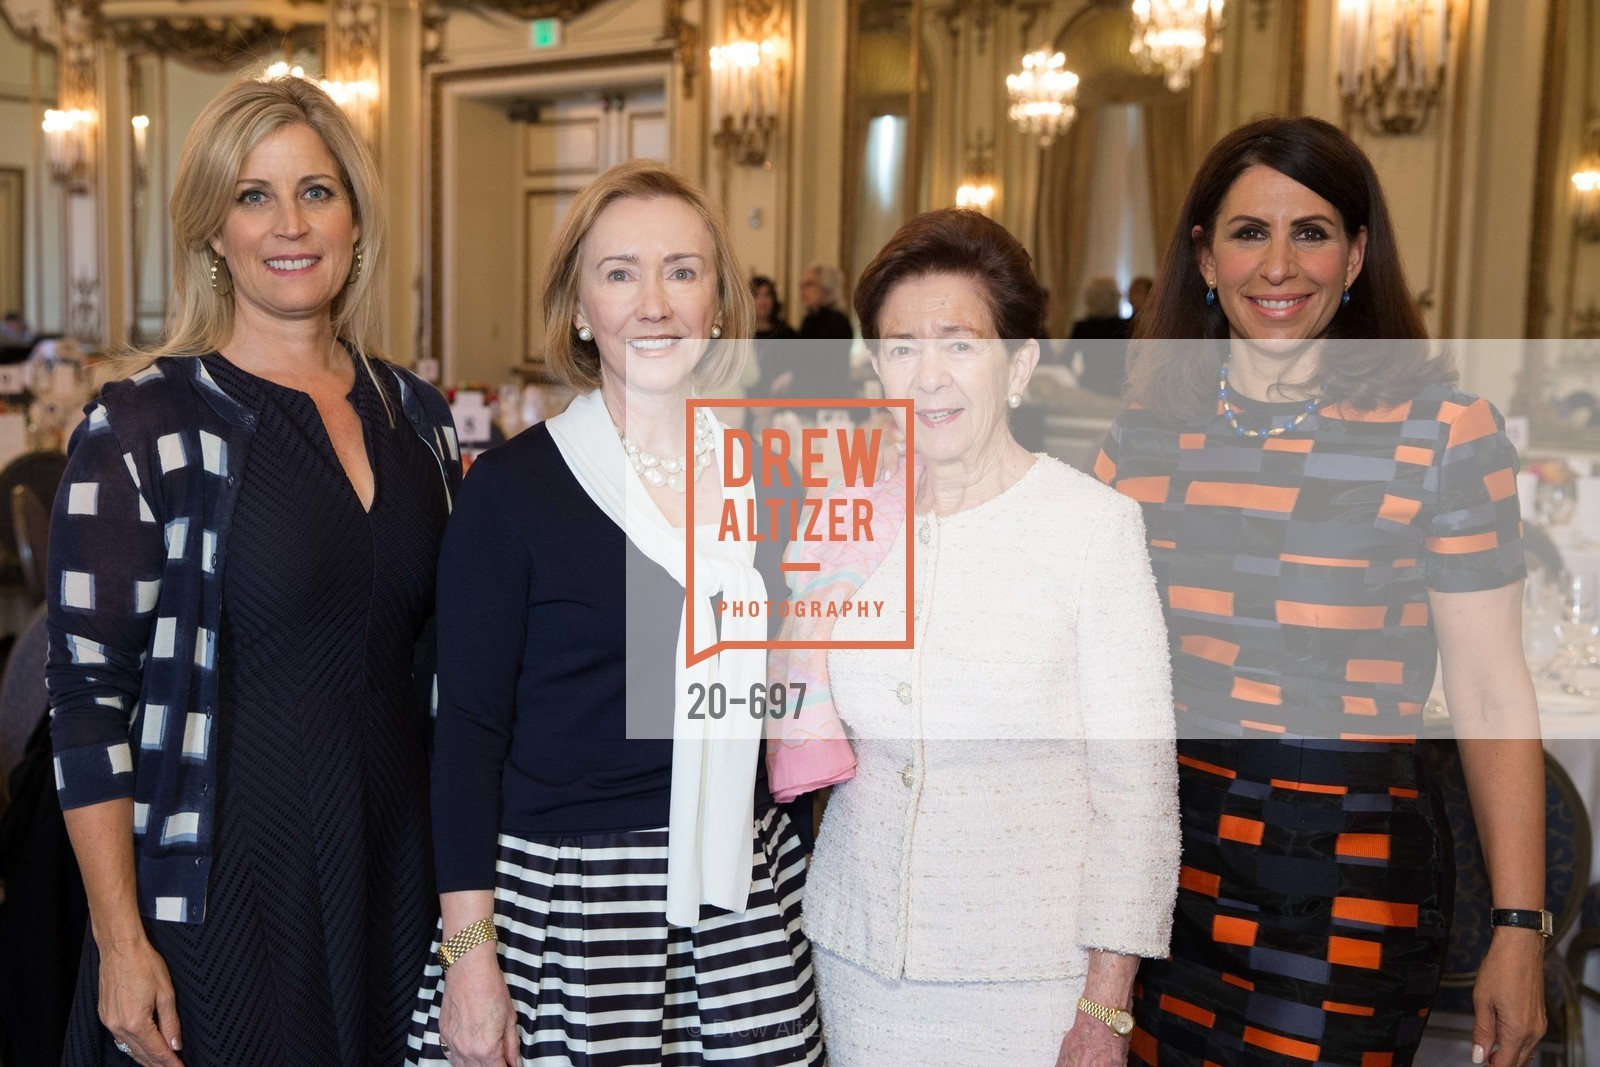 Jane Inch, Trish Otstott, Roselyne Swig, Lisa Grotts, JUNIOR LEAGUE OF SAN FRANCISCO's WATCH Luncheon, US, May 4th, 2015,Drew Altizer, Drew Altizer Photography, full-service agency, private events, San Francisco photographer, photographer california